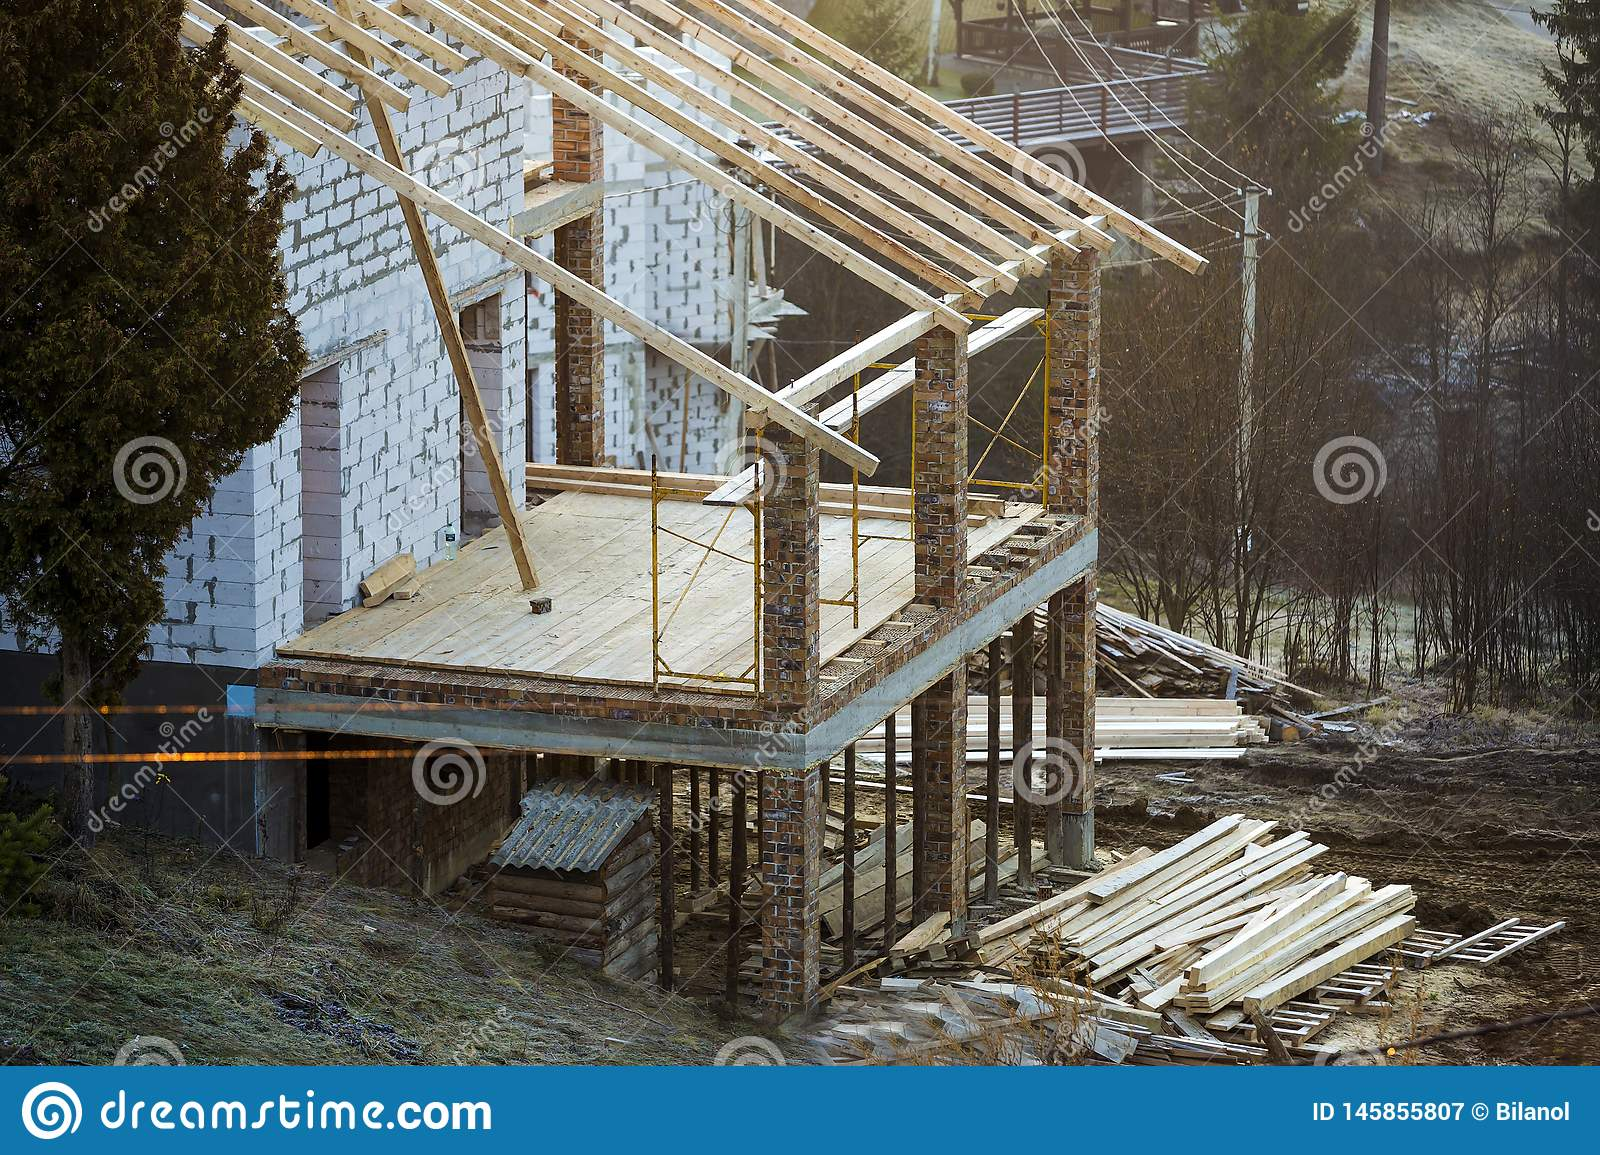 Cottage house building under construction with walls made of hollow foam insulation blocks, wooden roof frame and attached porch